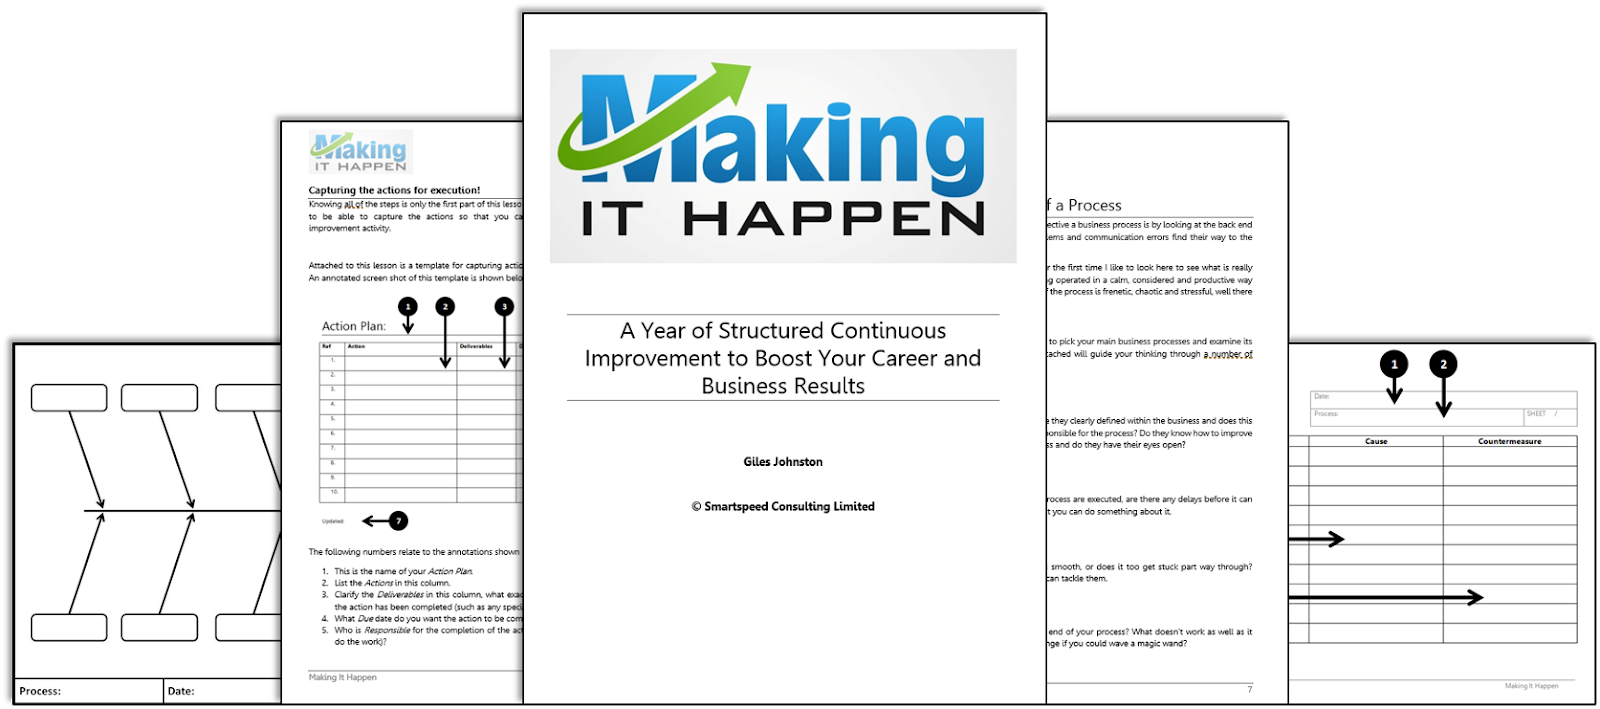 A Year of Structured Continuous Improvement to Boost Your